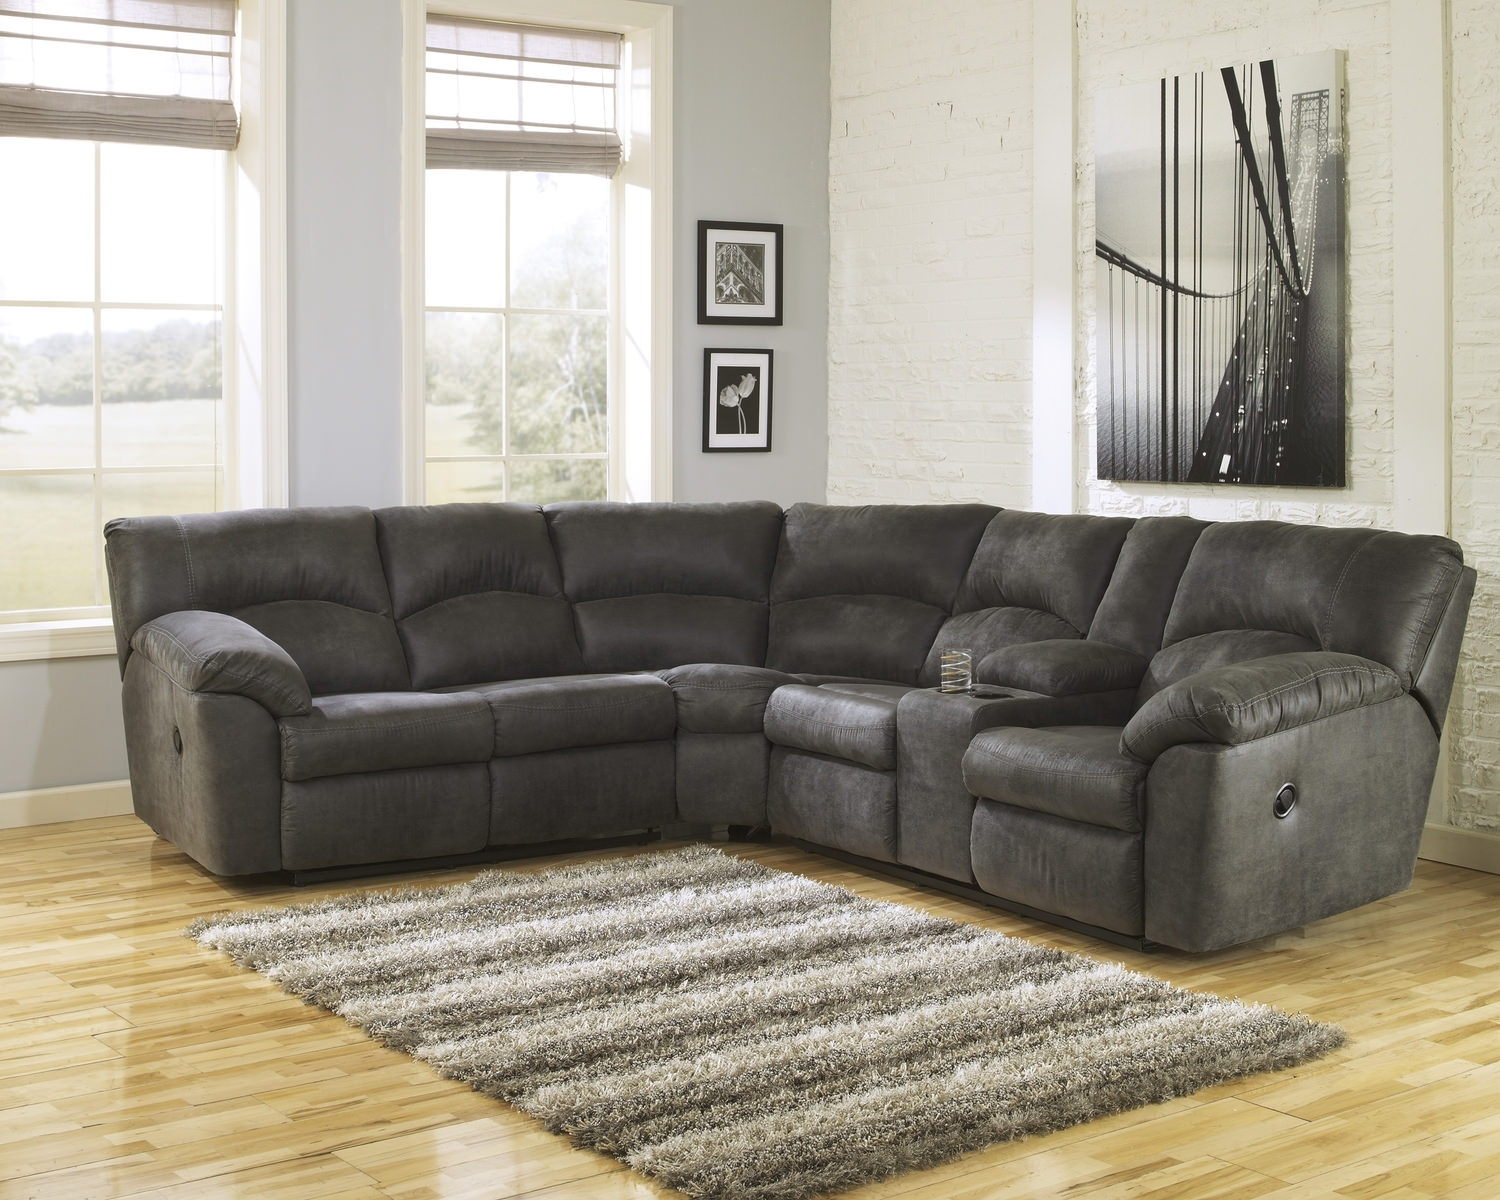 Featured Image of Dock 86 Sectional Sofas